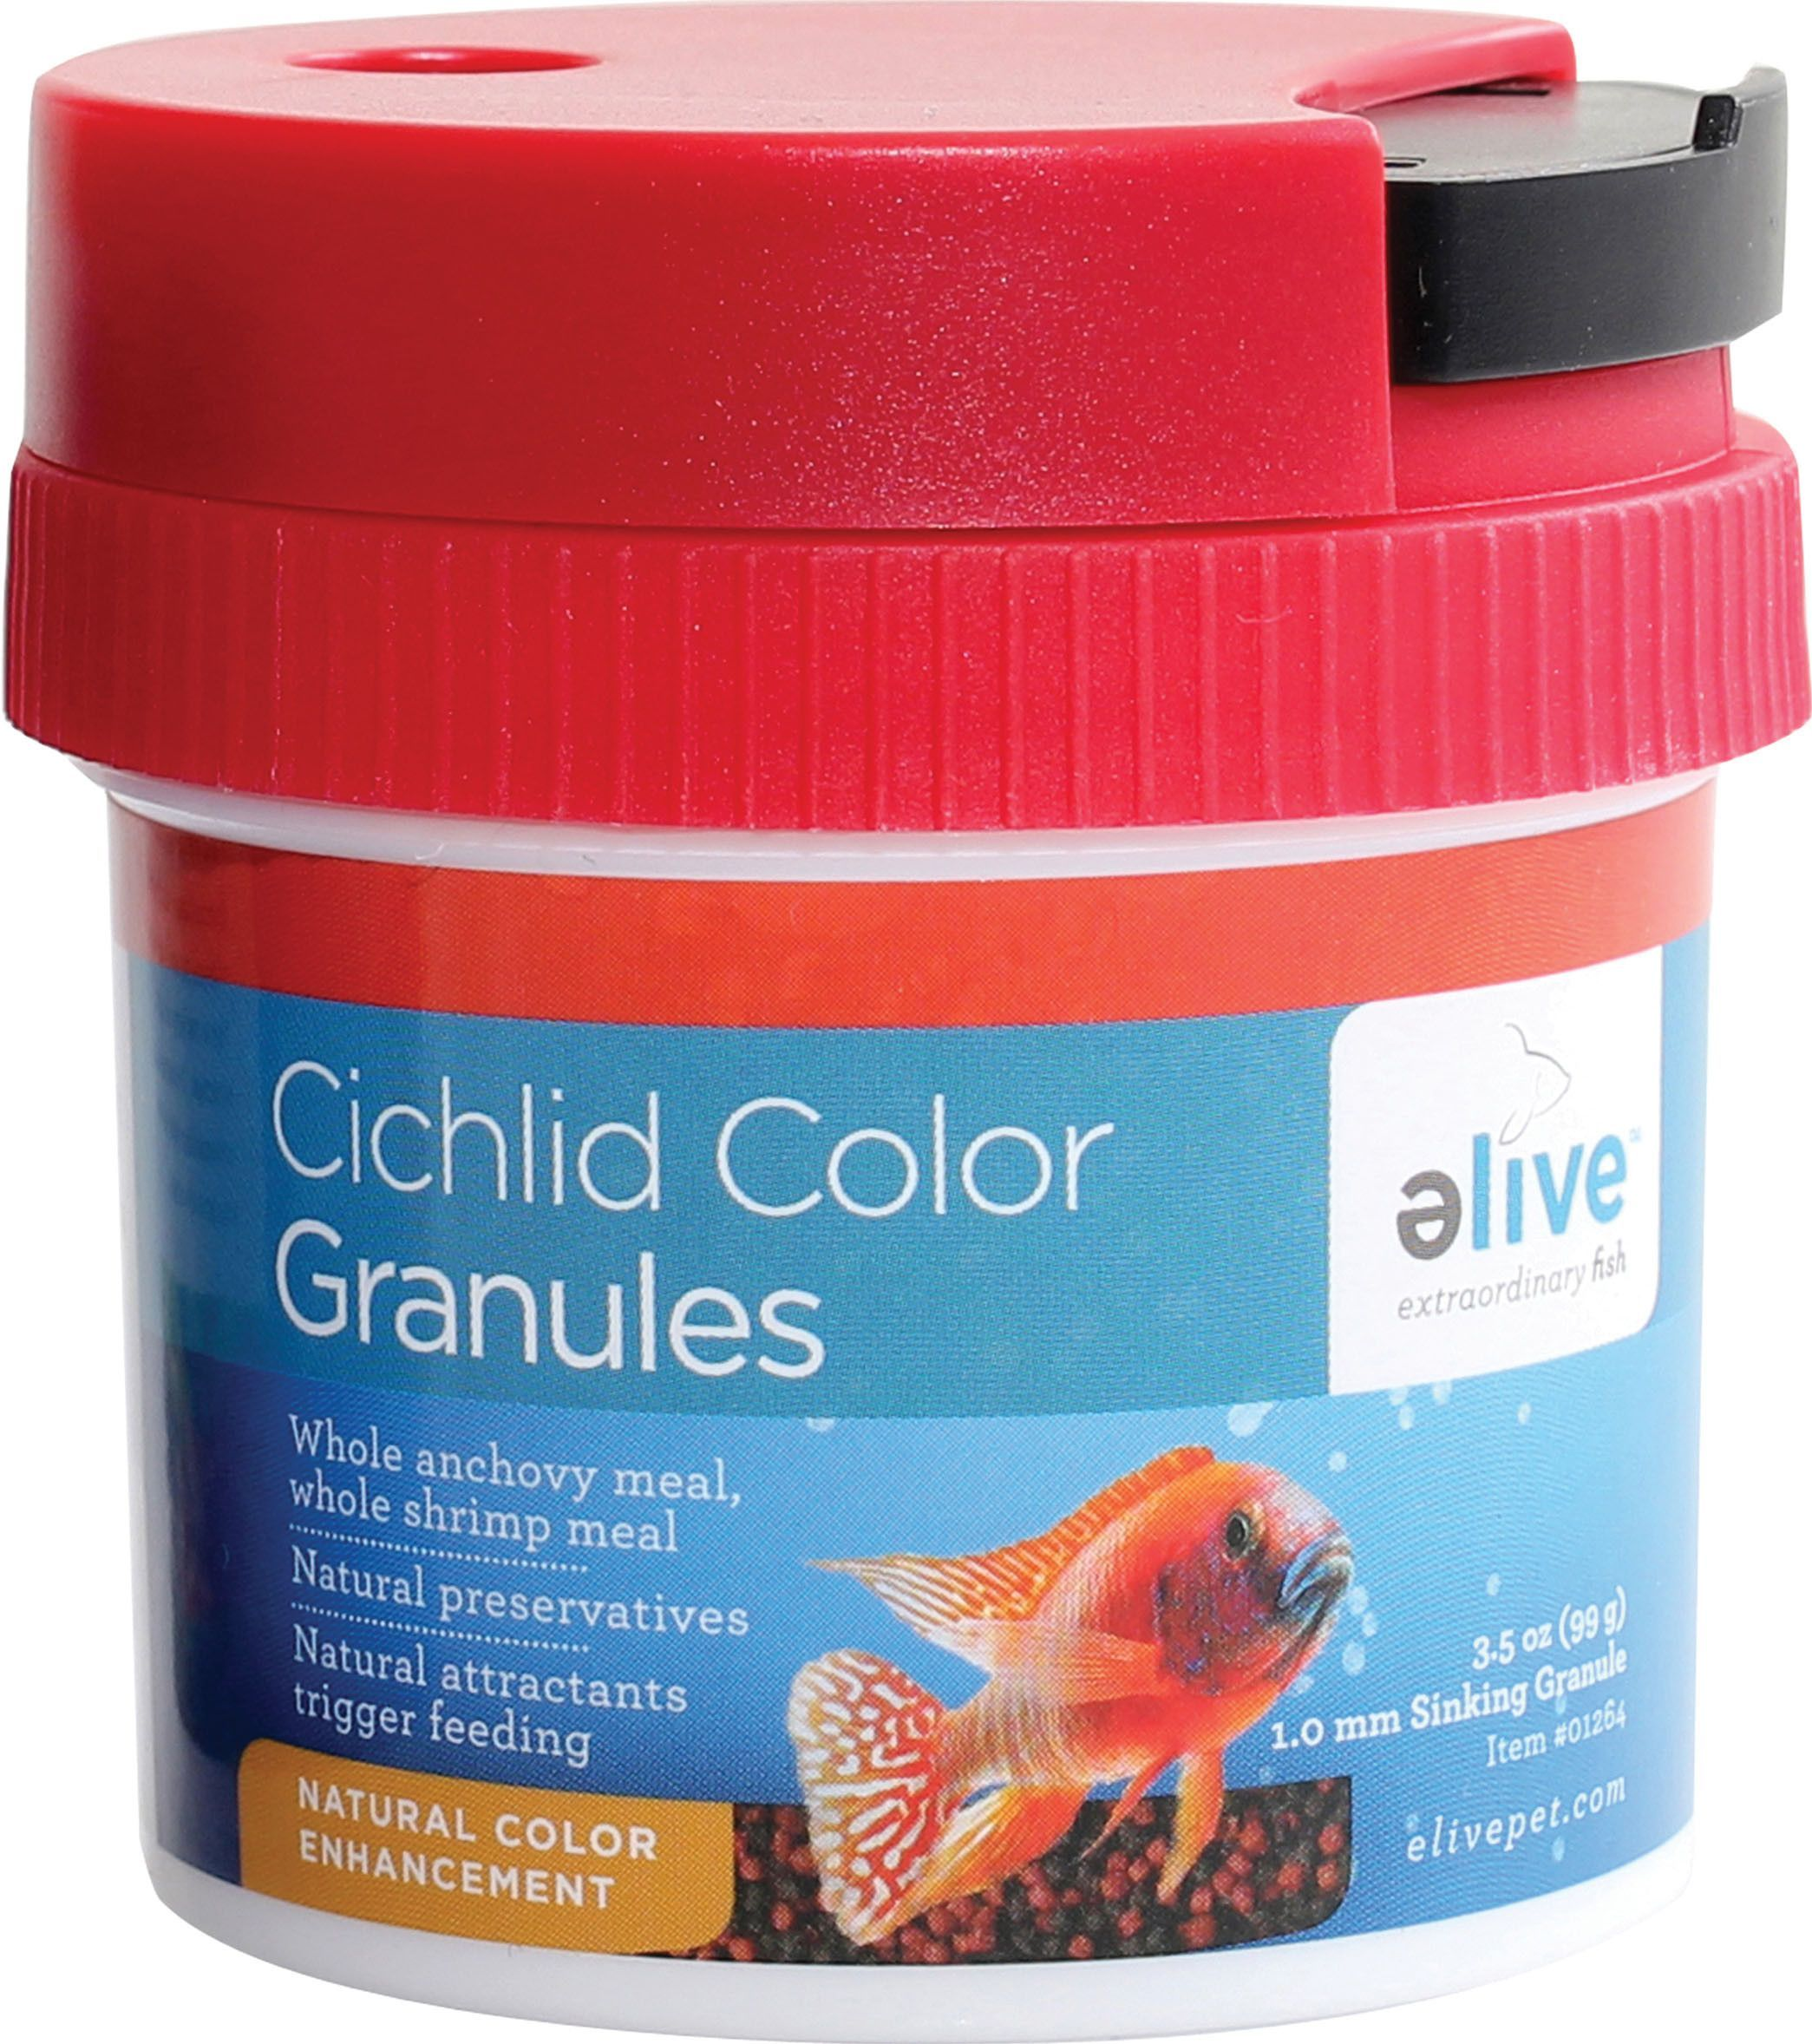 Cichlid Color Granules | Products | Pinterest | Products